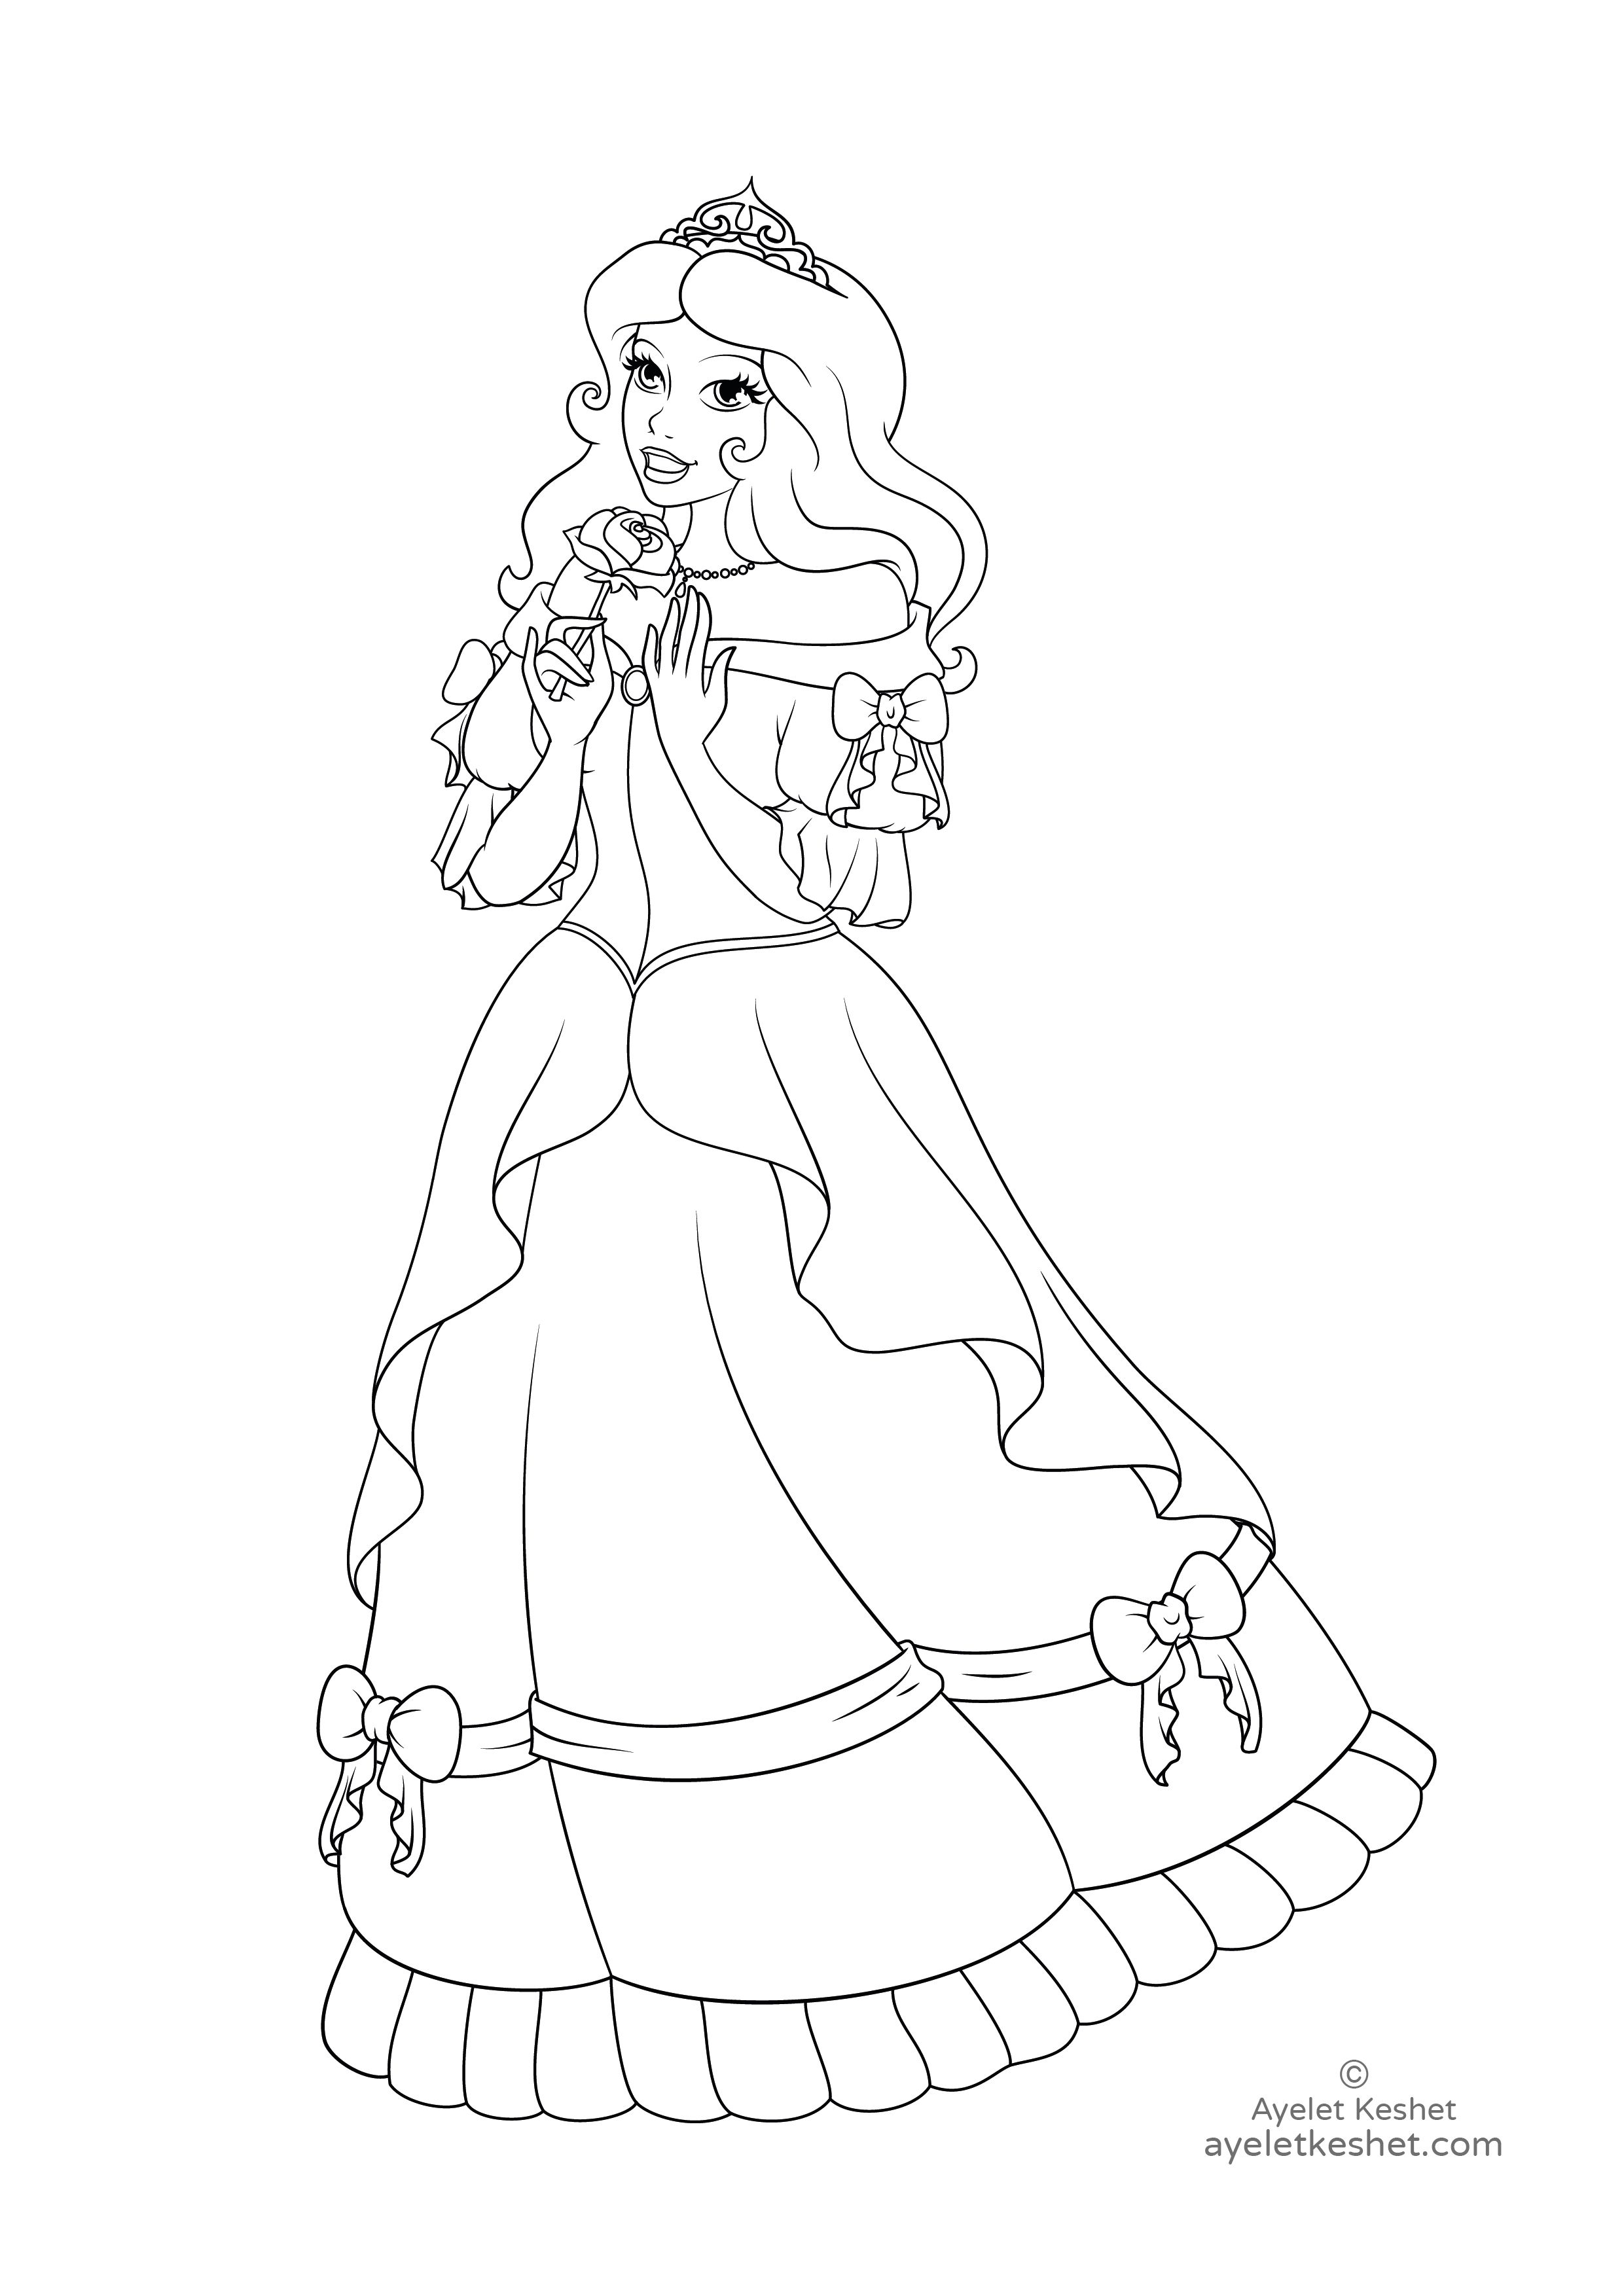 Princess Aurora Coloring Pages Free Coloring Pages Princess Aurora Coloring Pages Print Elsa Anime